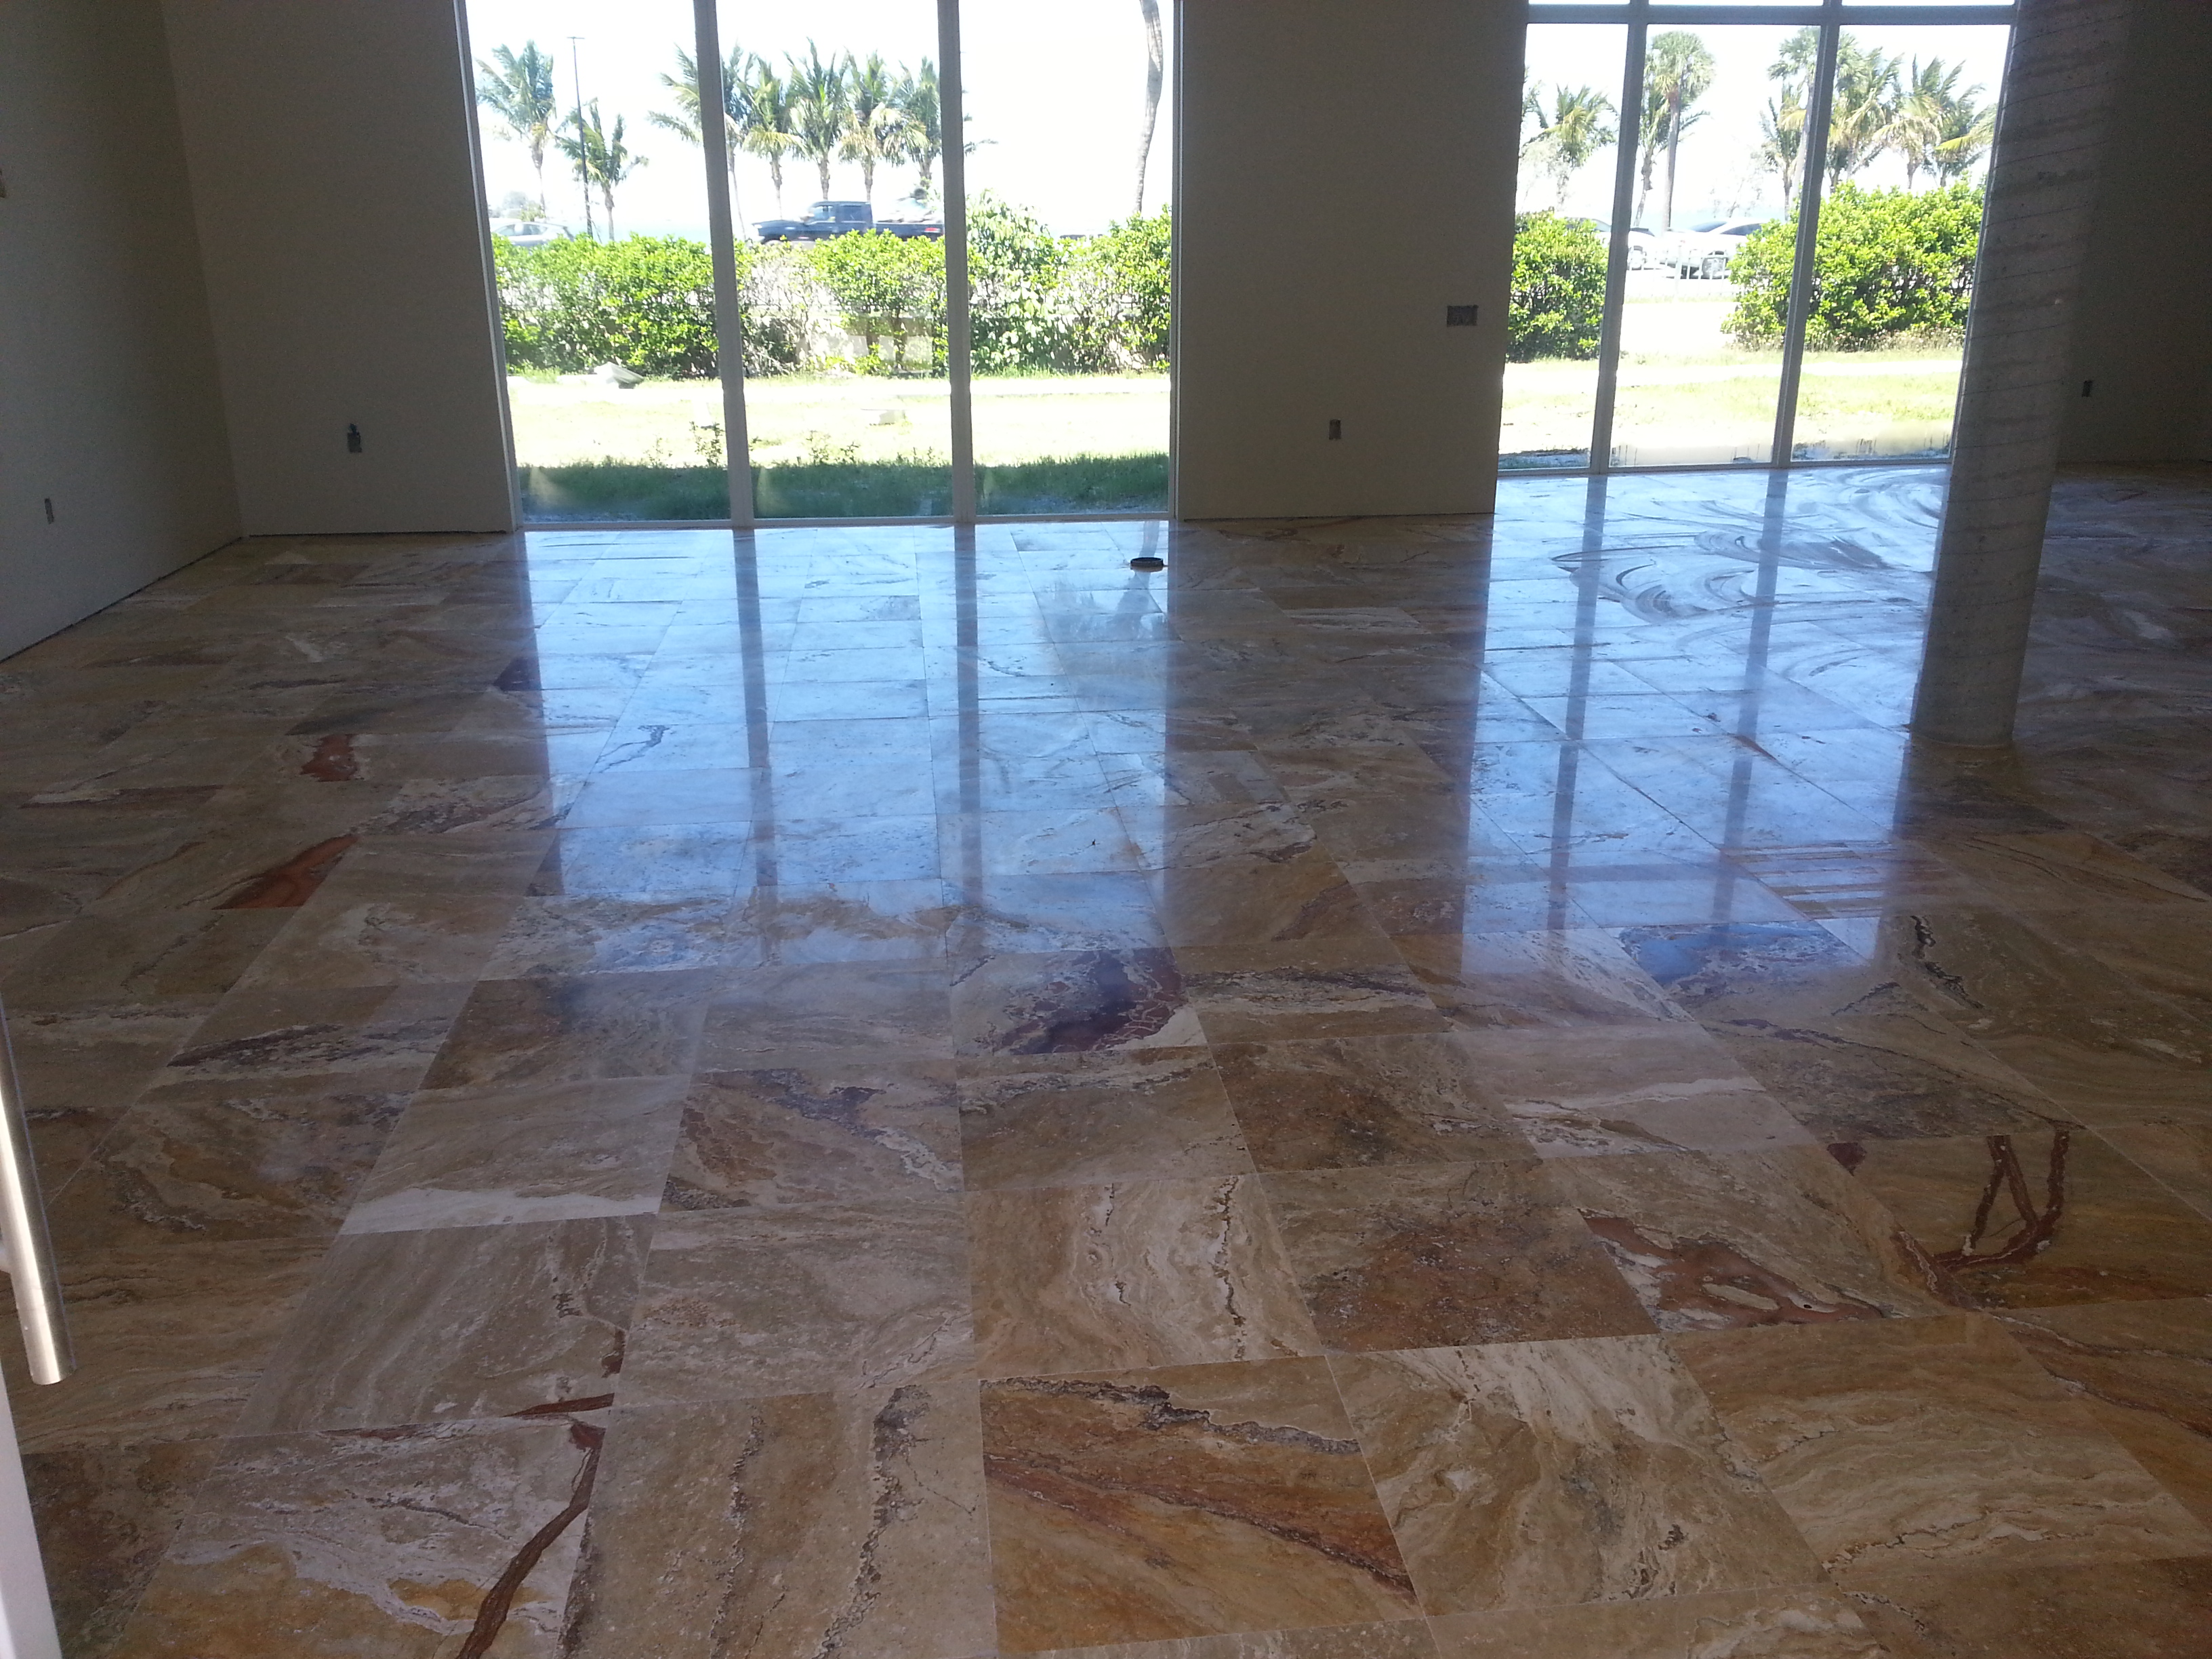 Travertine Guide to Buying Natural Stone Pavers and Tiles